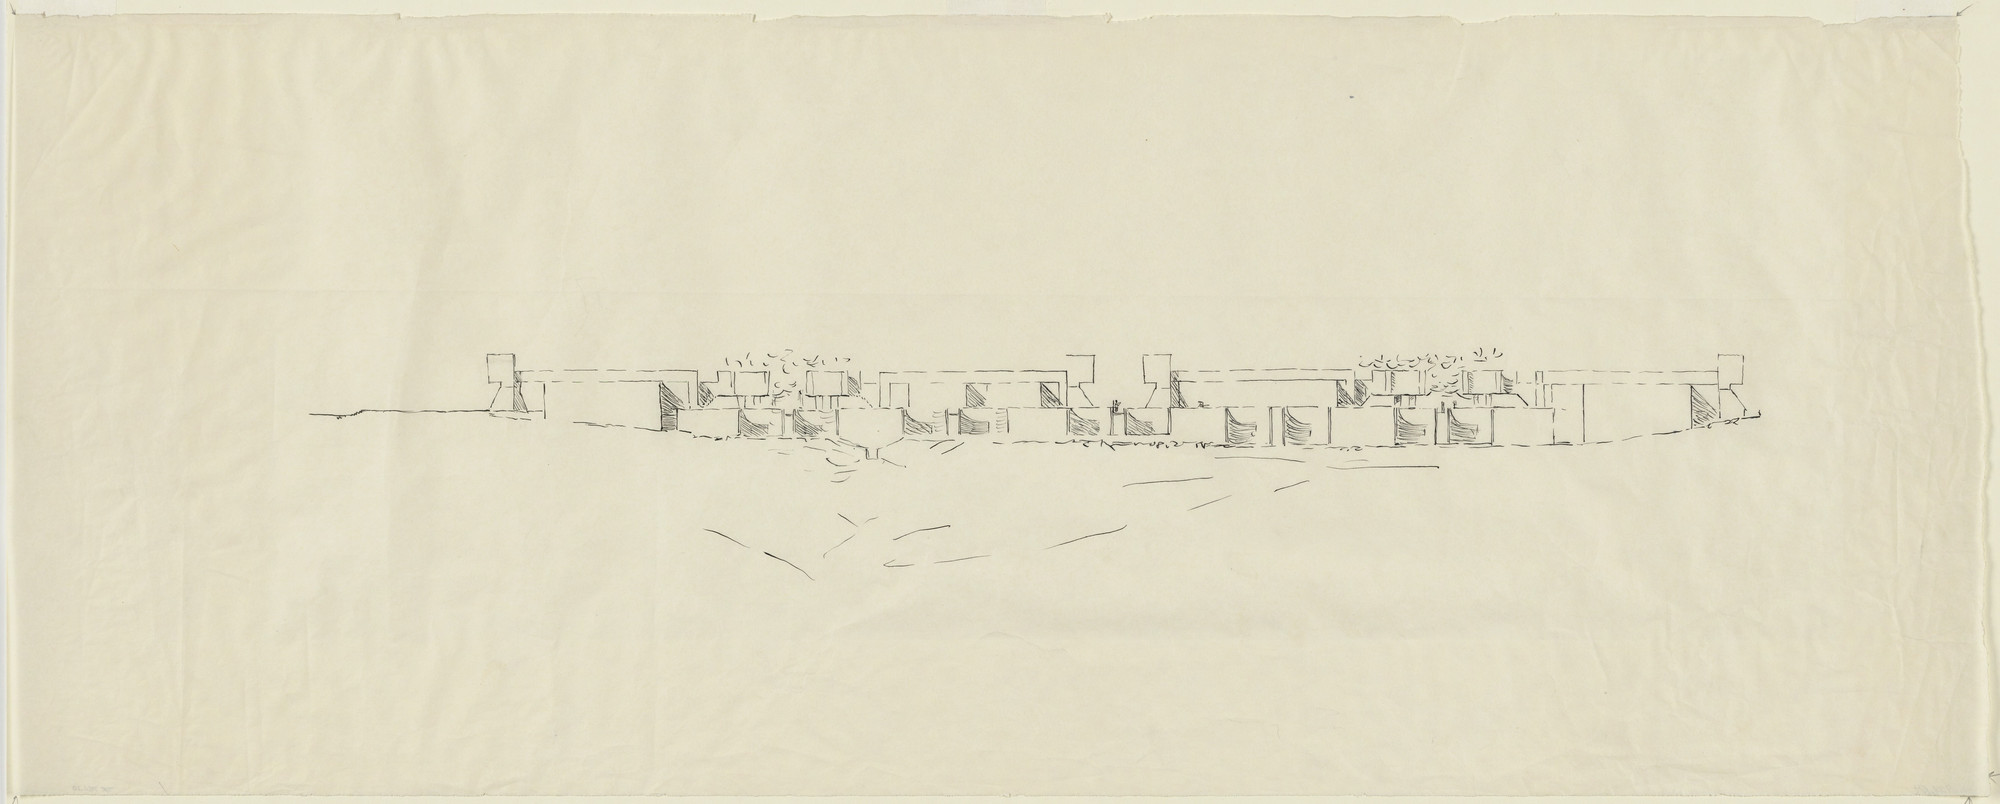 Louis I. Kahn. Salk Institute for Biological Studies (laboratory, meeting house, and housing), La Jolla, California, (Elevation of laboratory). 1961